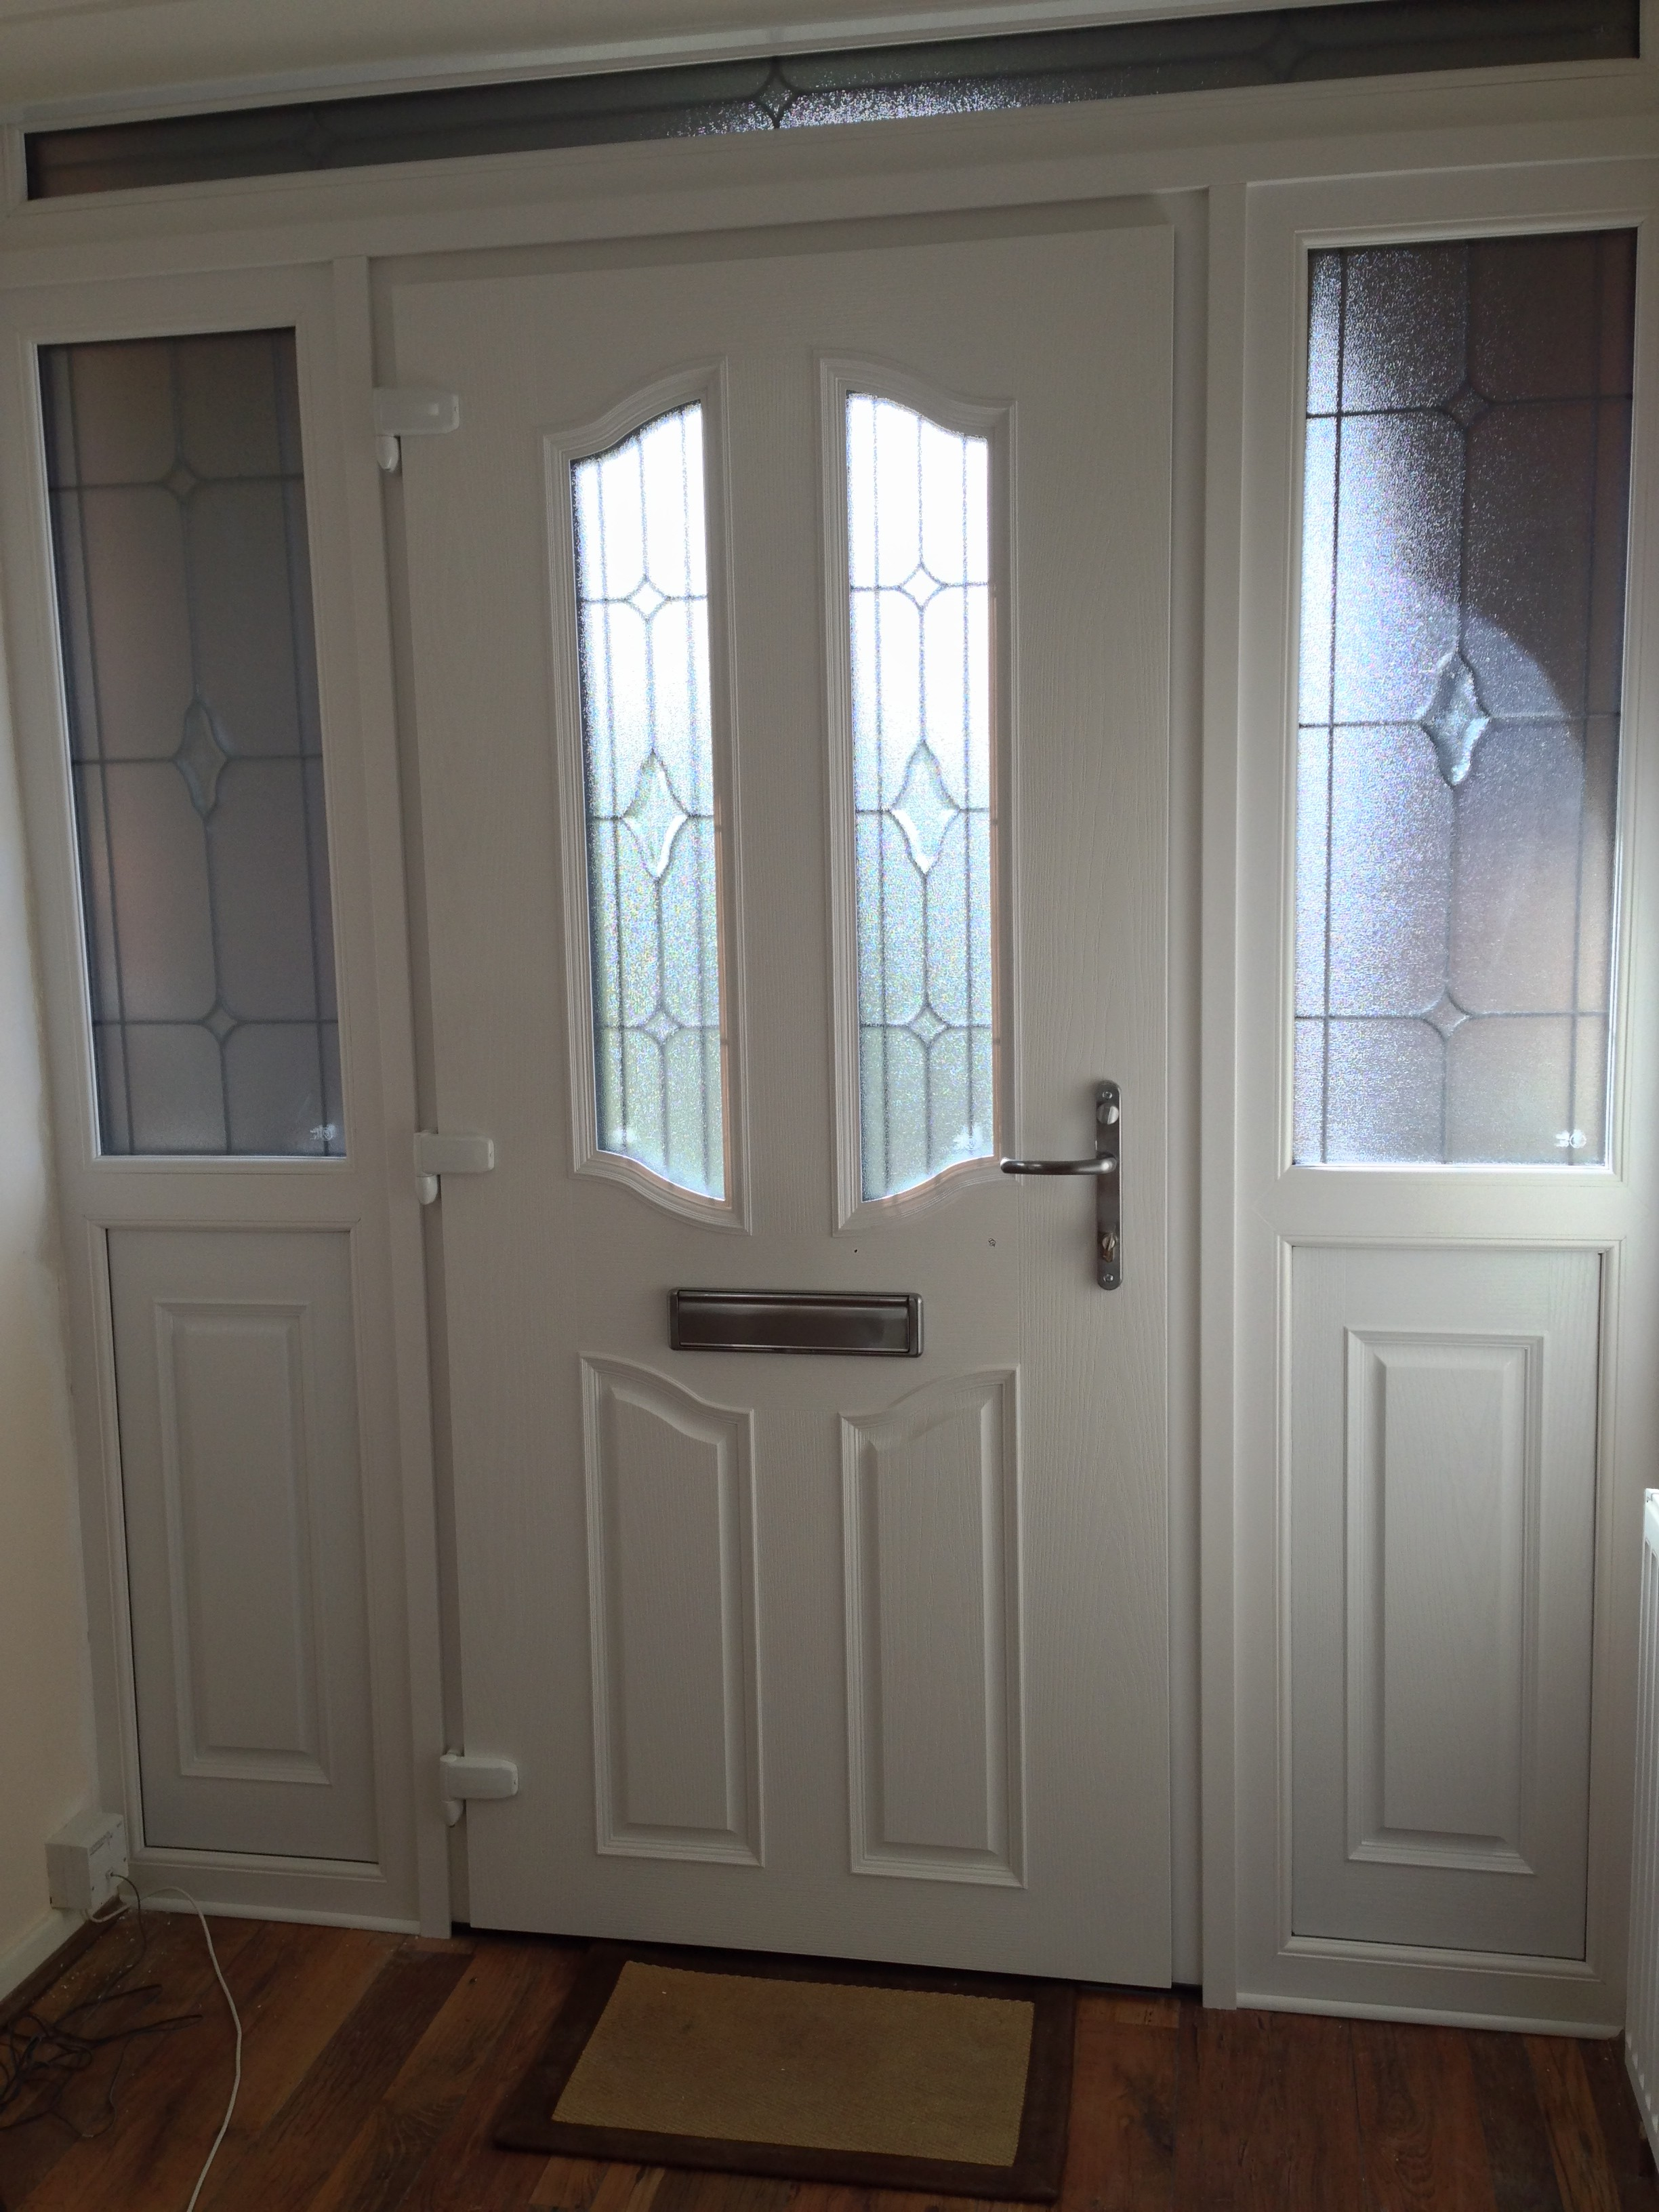 Adoordoors Apeer 70 Composite Door Inside View